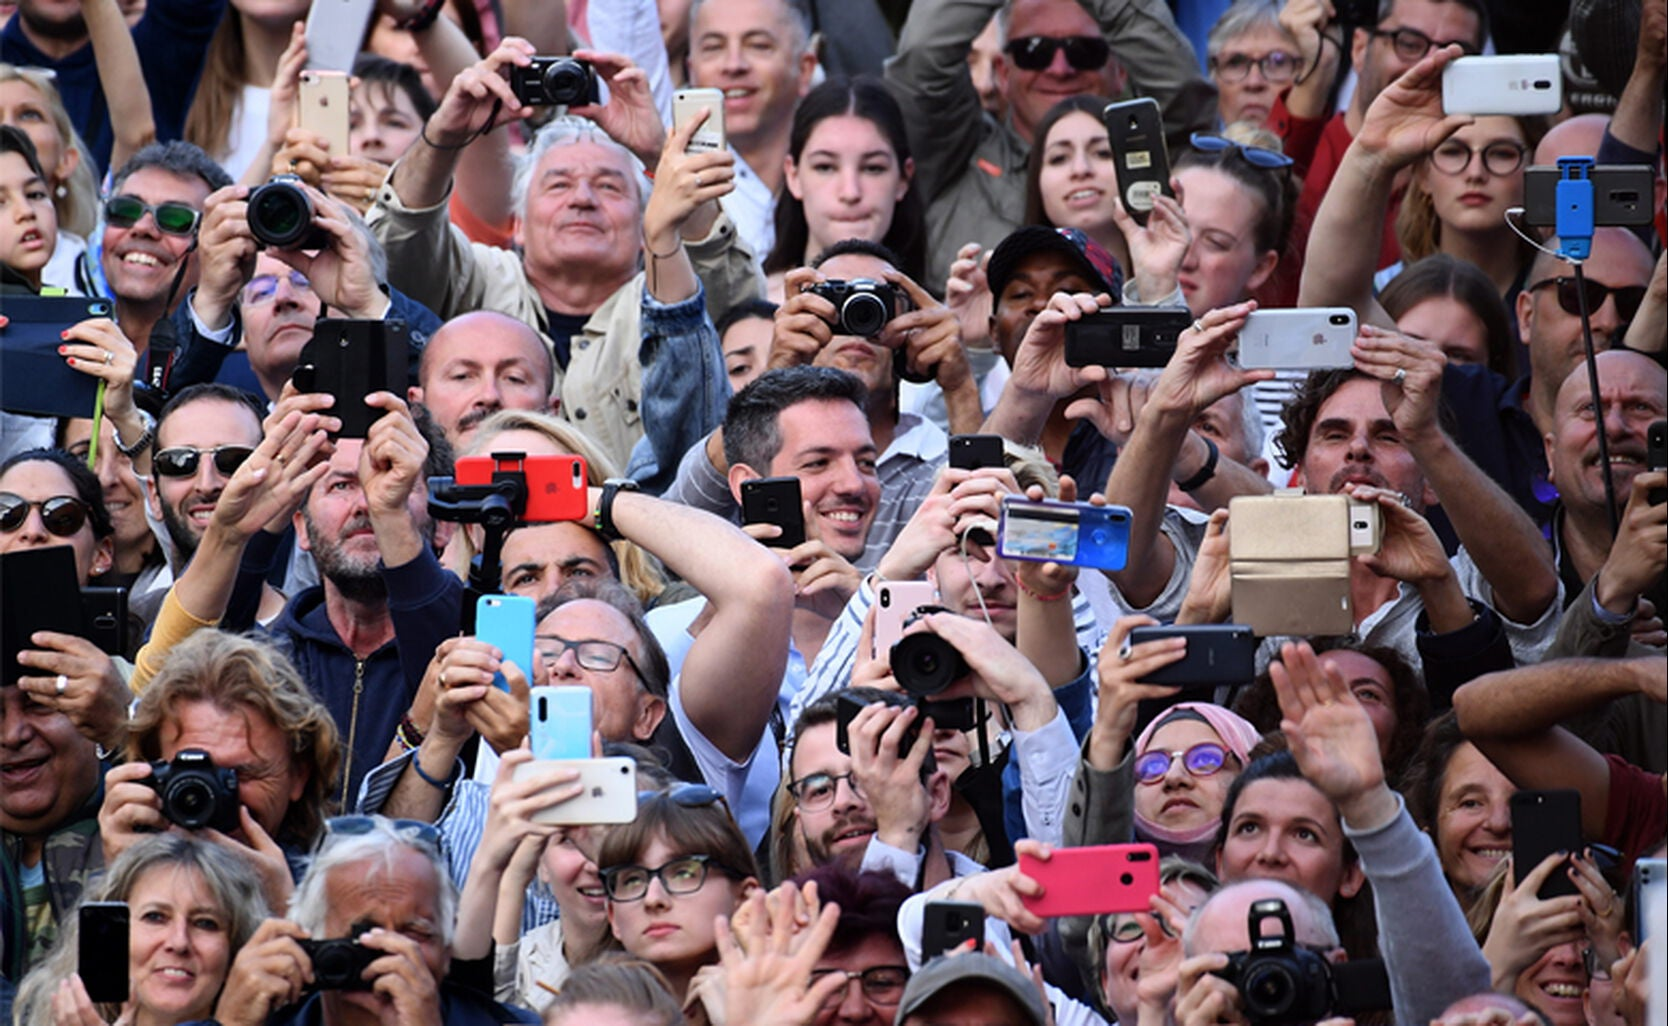 72nd Cannes Film Festival Crowd